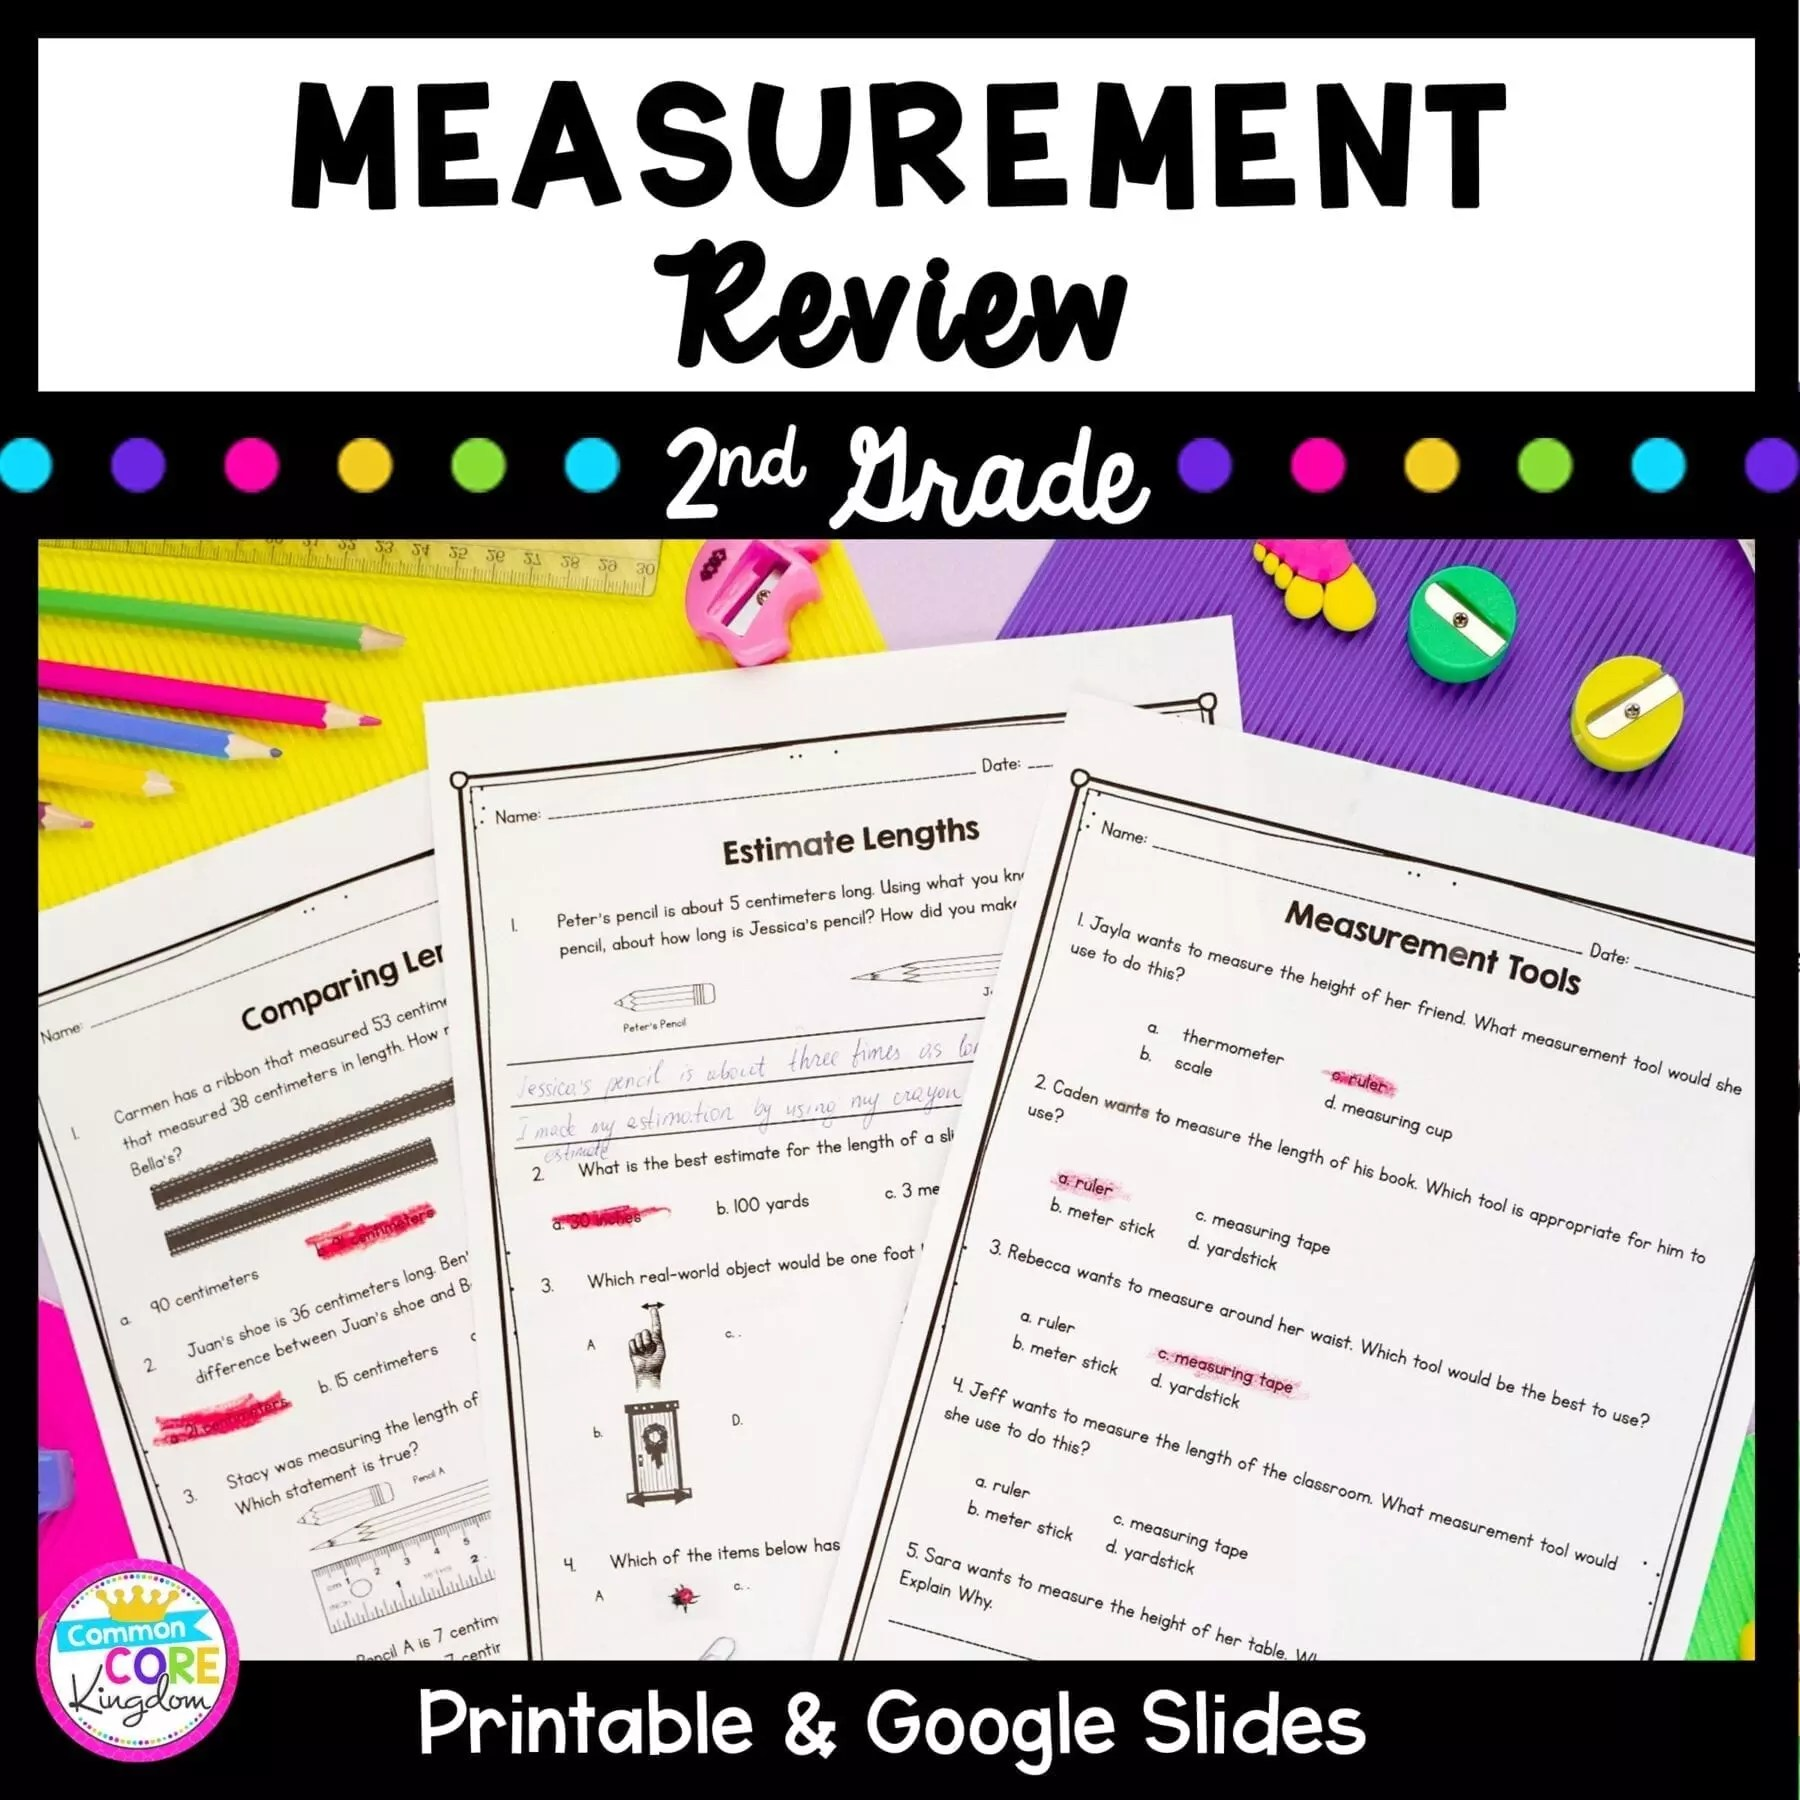 hight resolution of Measurement Review - 2nd Grade Google Slides Distance Learning Pack    Common Core Kingdom